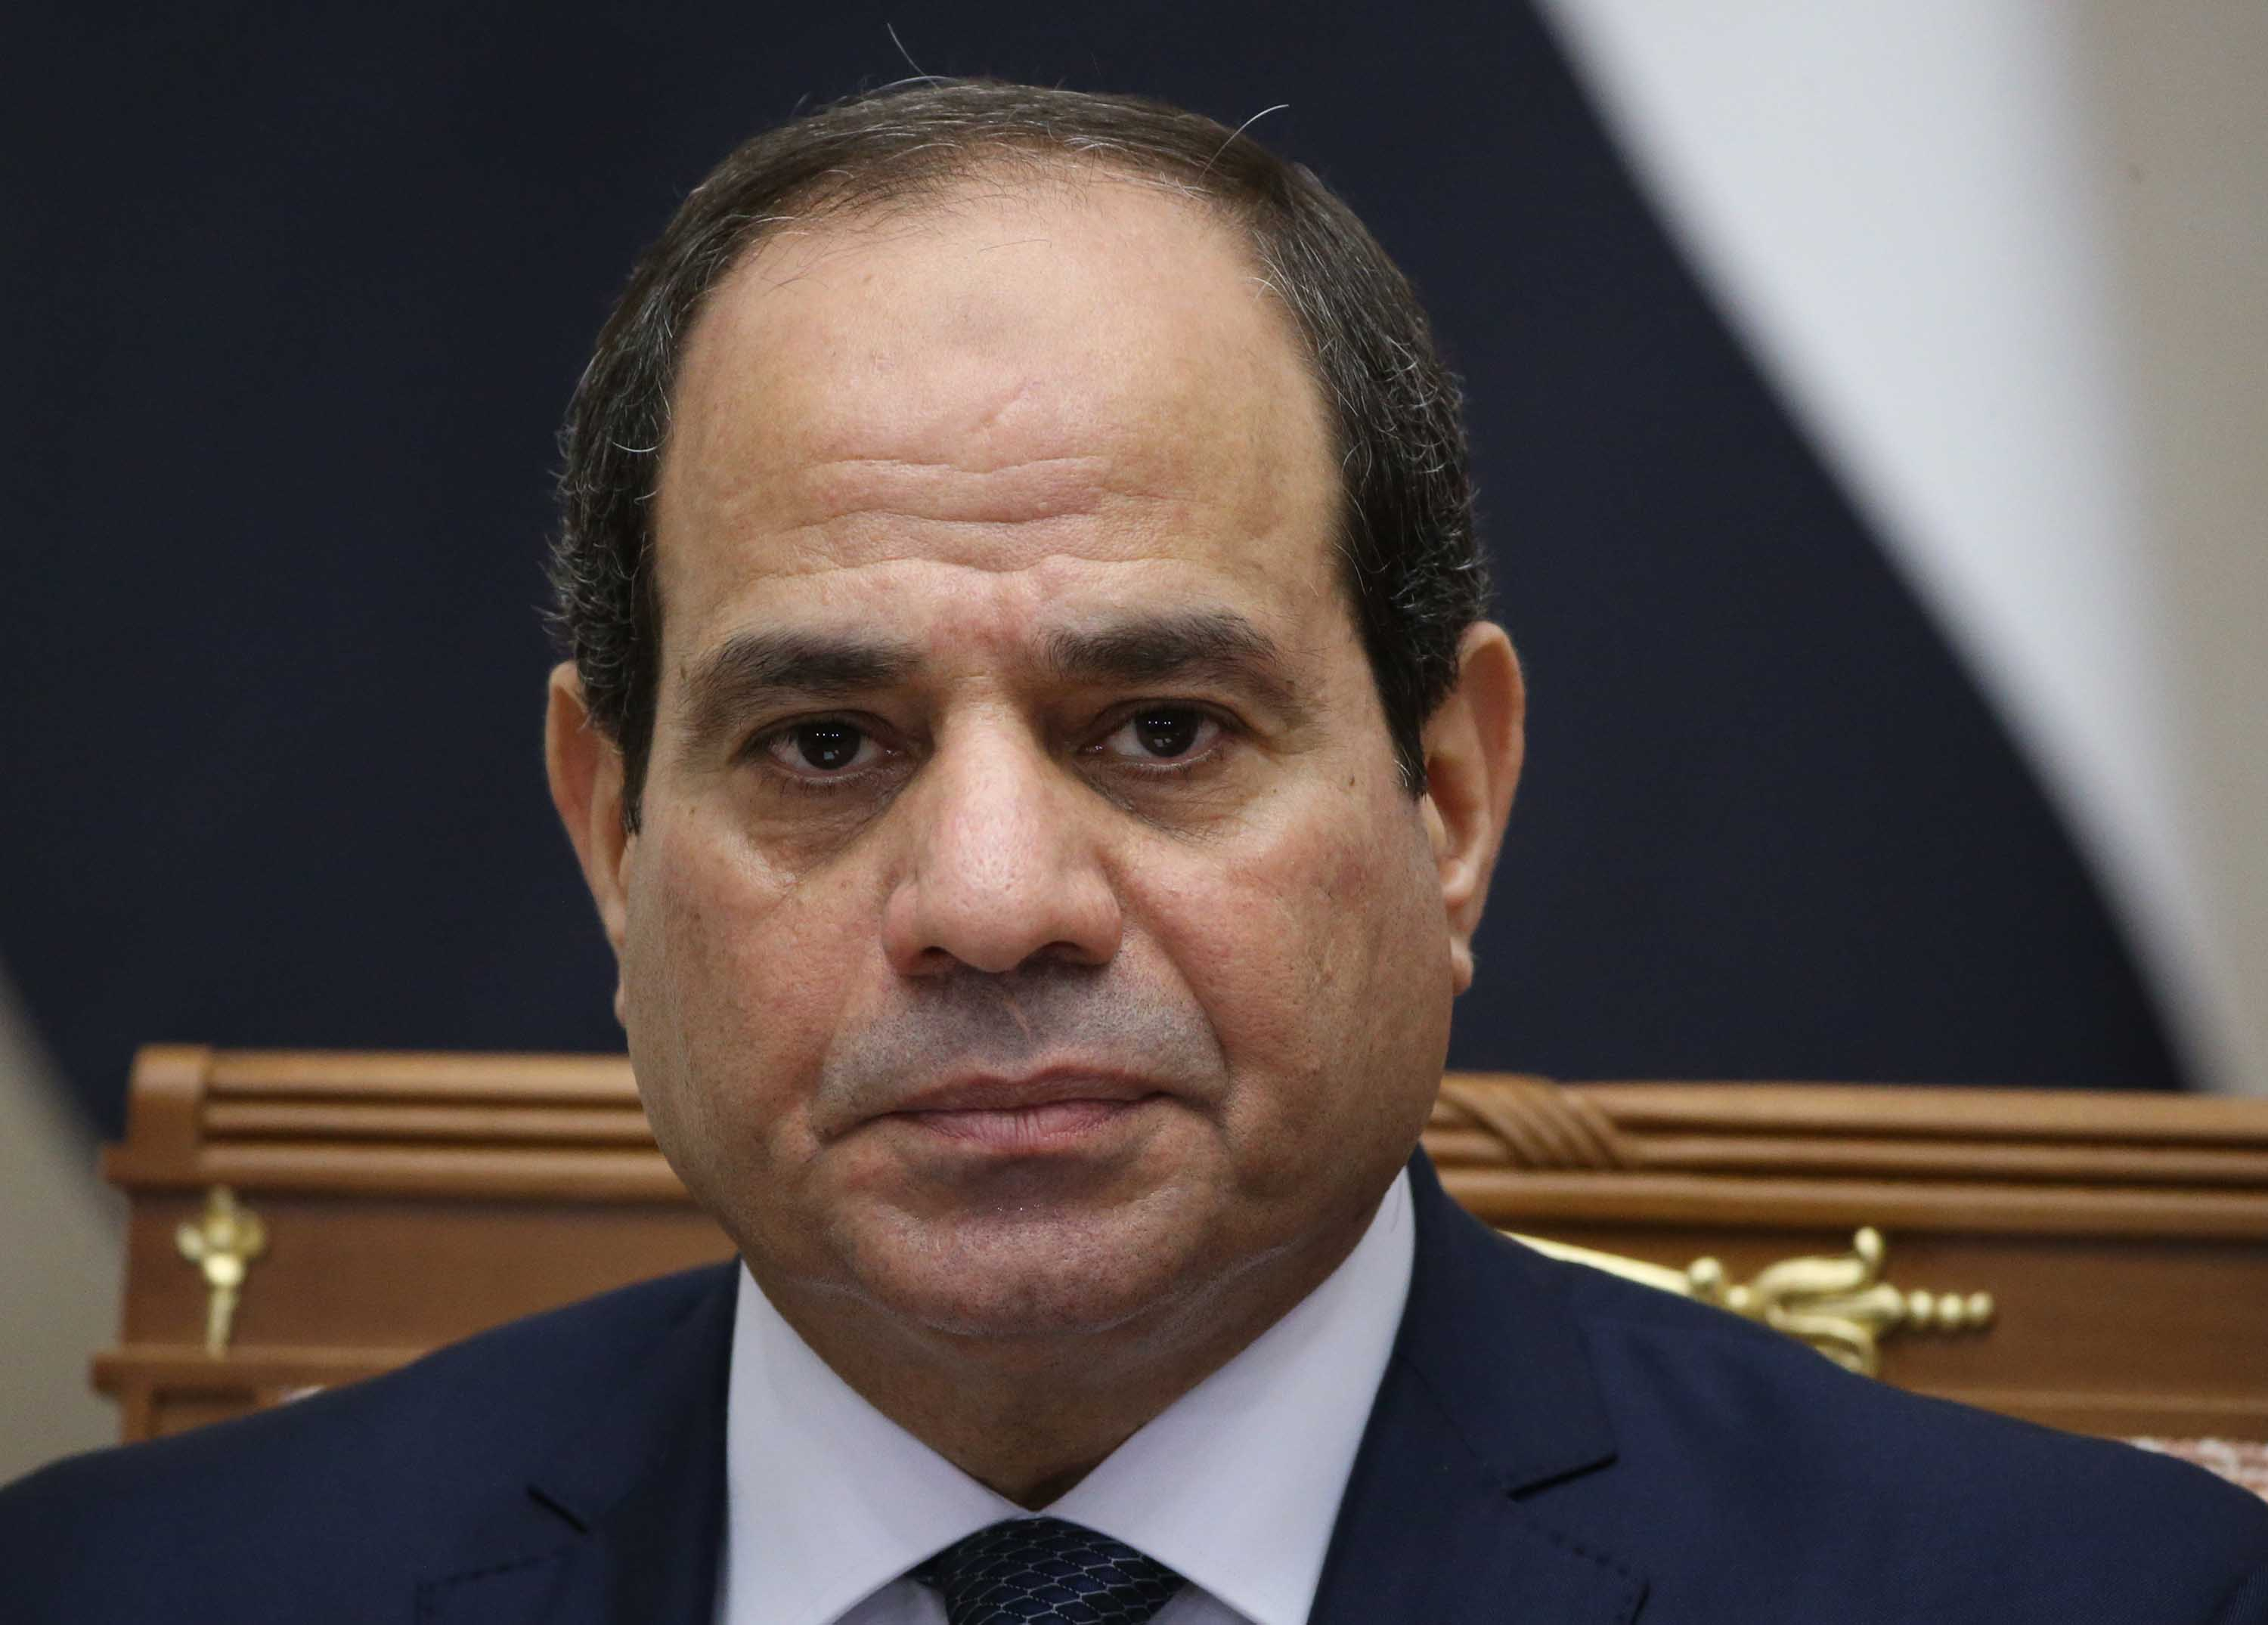 Egyptian President Abdel Fattah el-Sisi pictured at a meeting in Sochi, Russia, in October 2018.